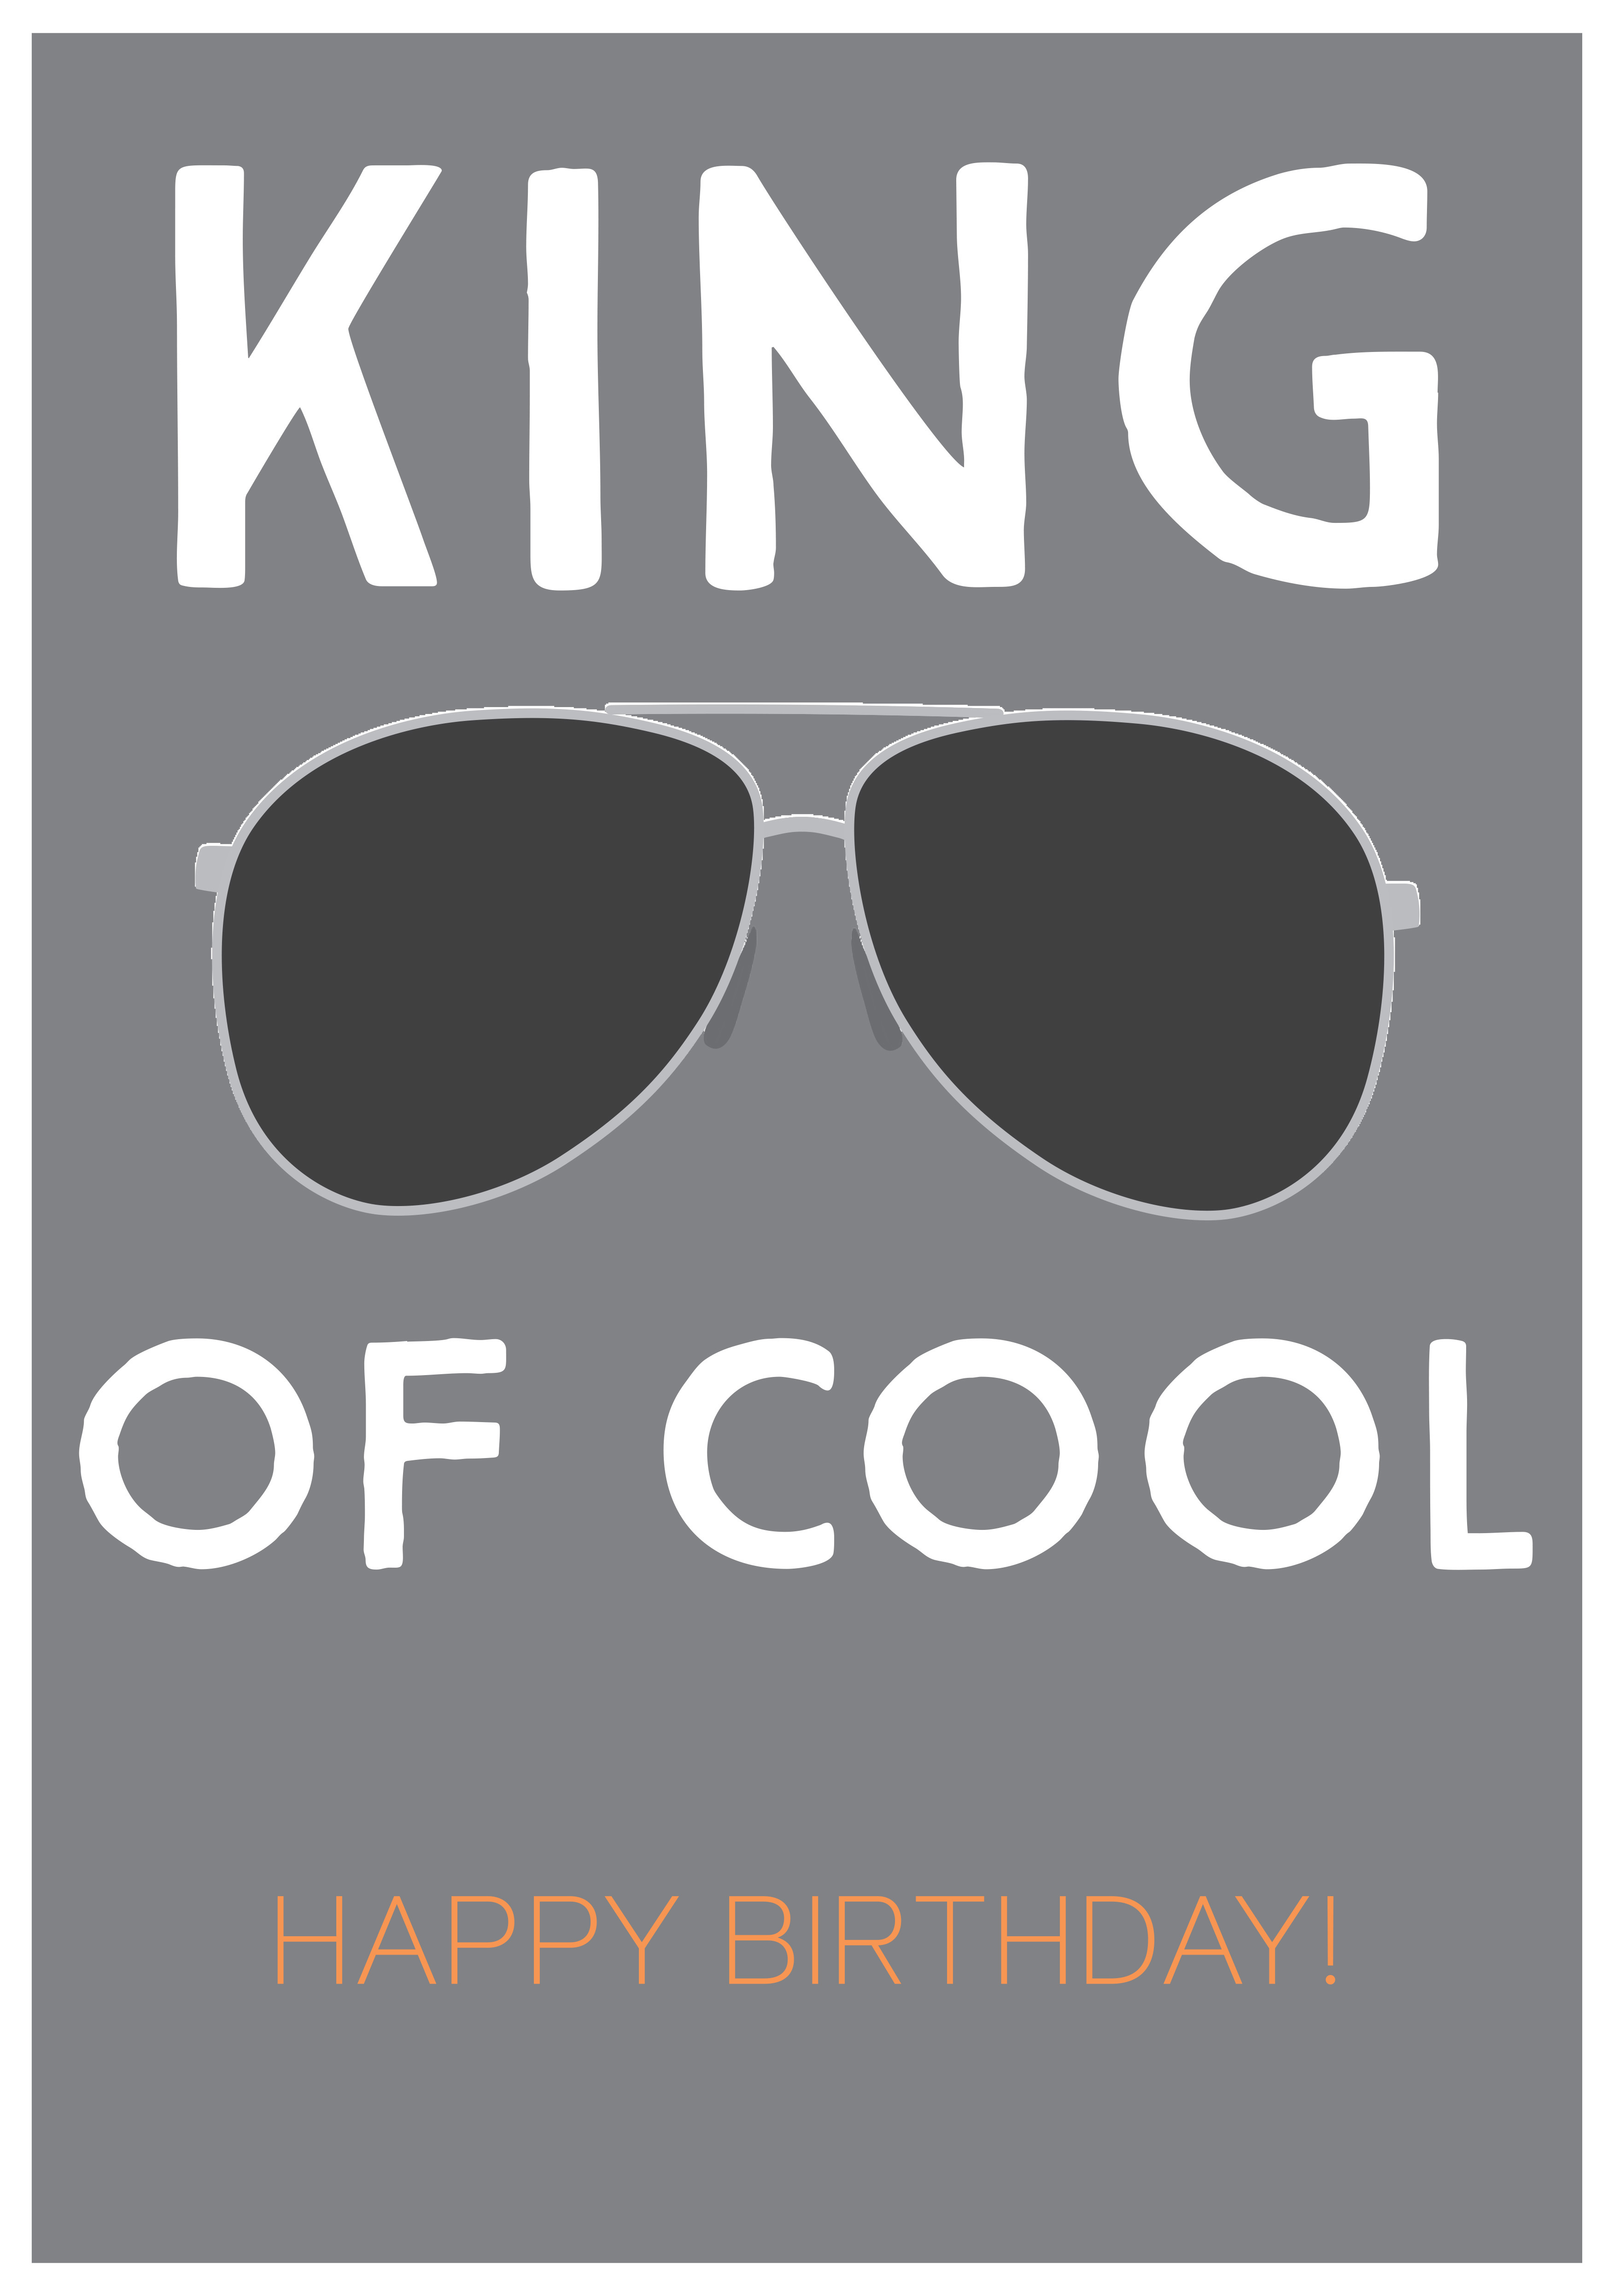 King of Cool Birthday Card